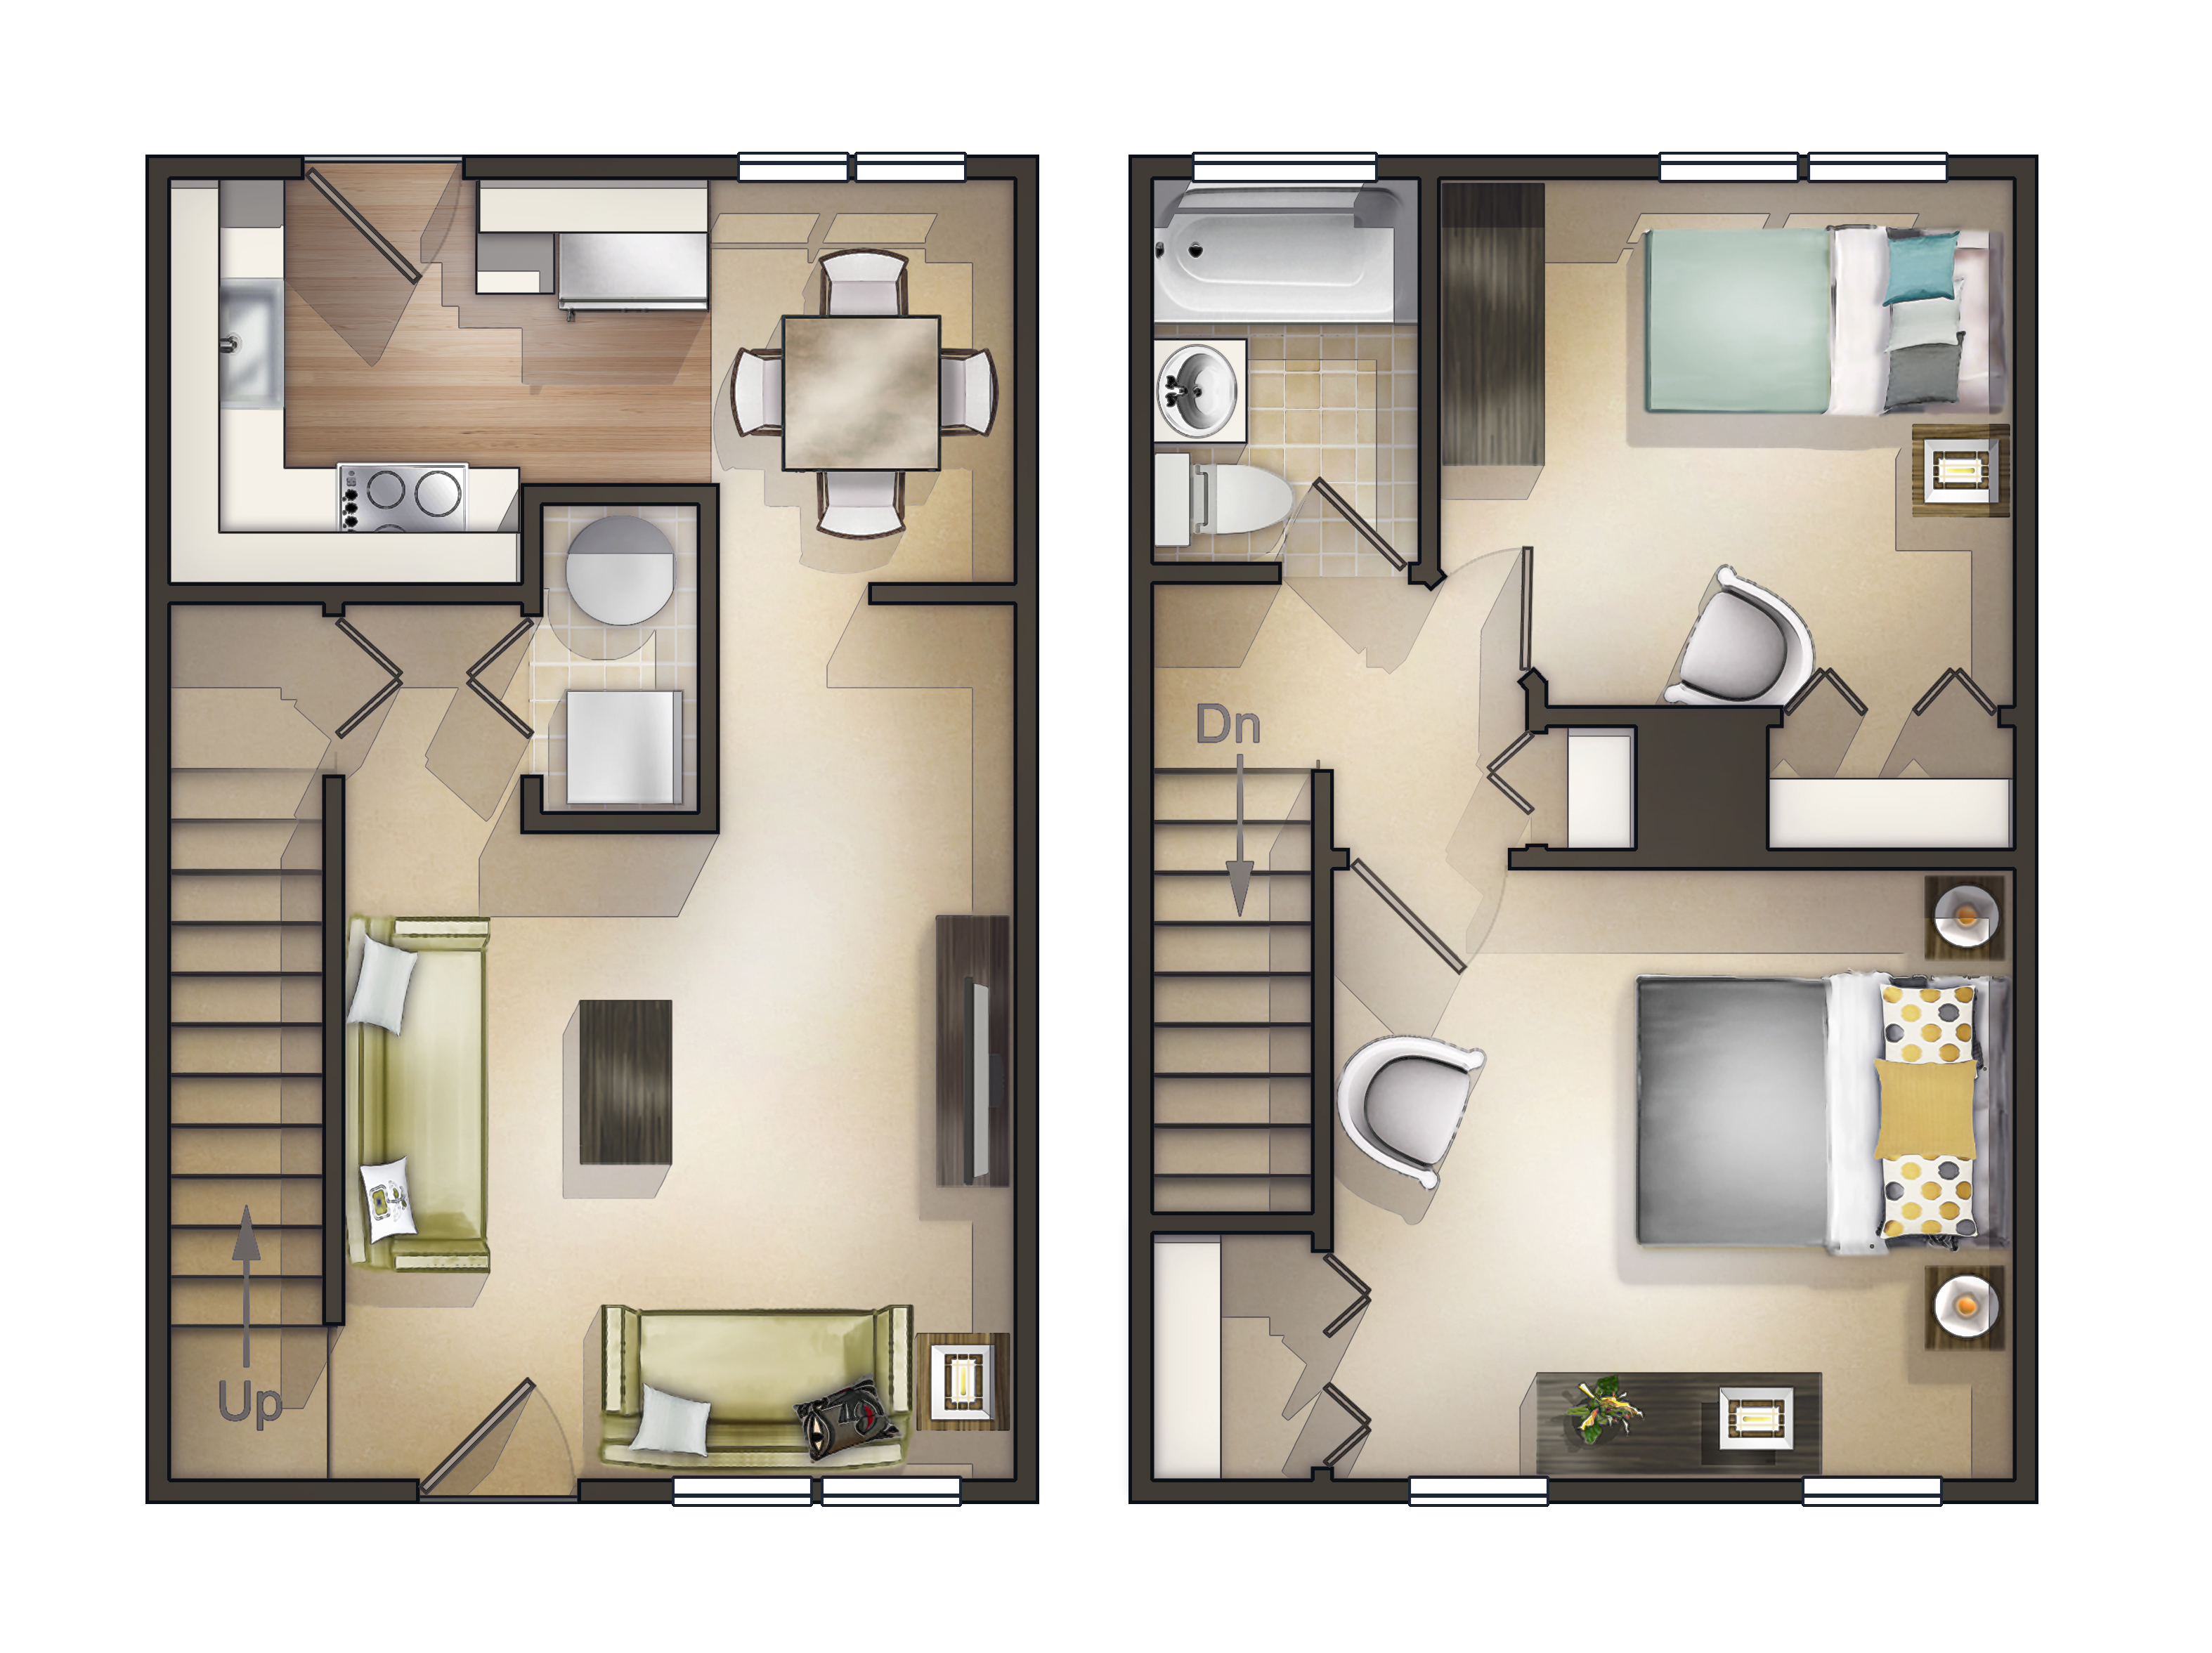 2 Bedroom Townhouse Apartment Floorplan